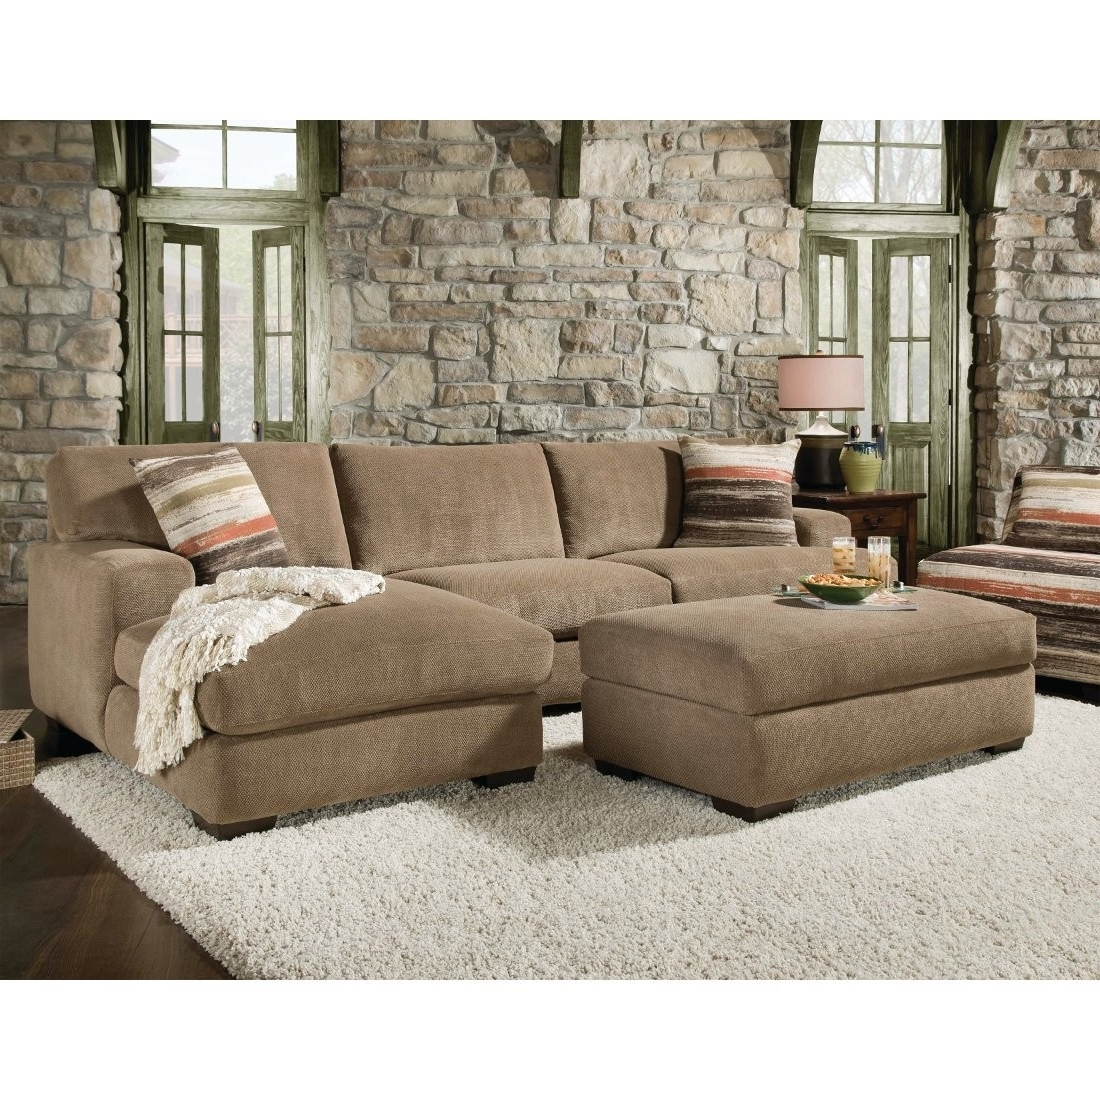 Well Liked Beautiful Sectional Sofa With Chaise And Ottoman Pictures Pertaining To Leather Sectionals With Chaise (View 10 of 15)